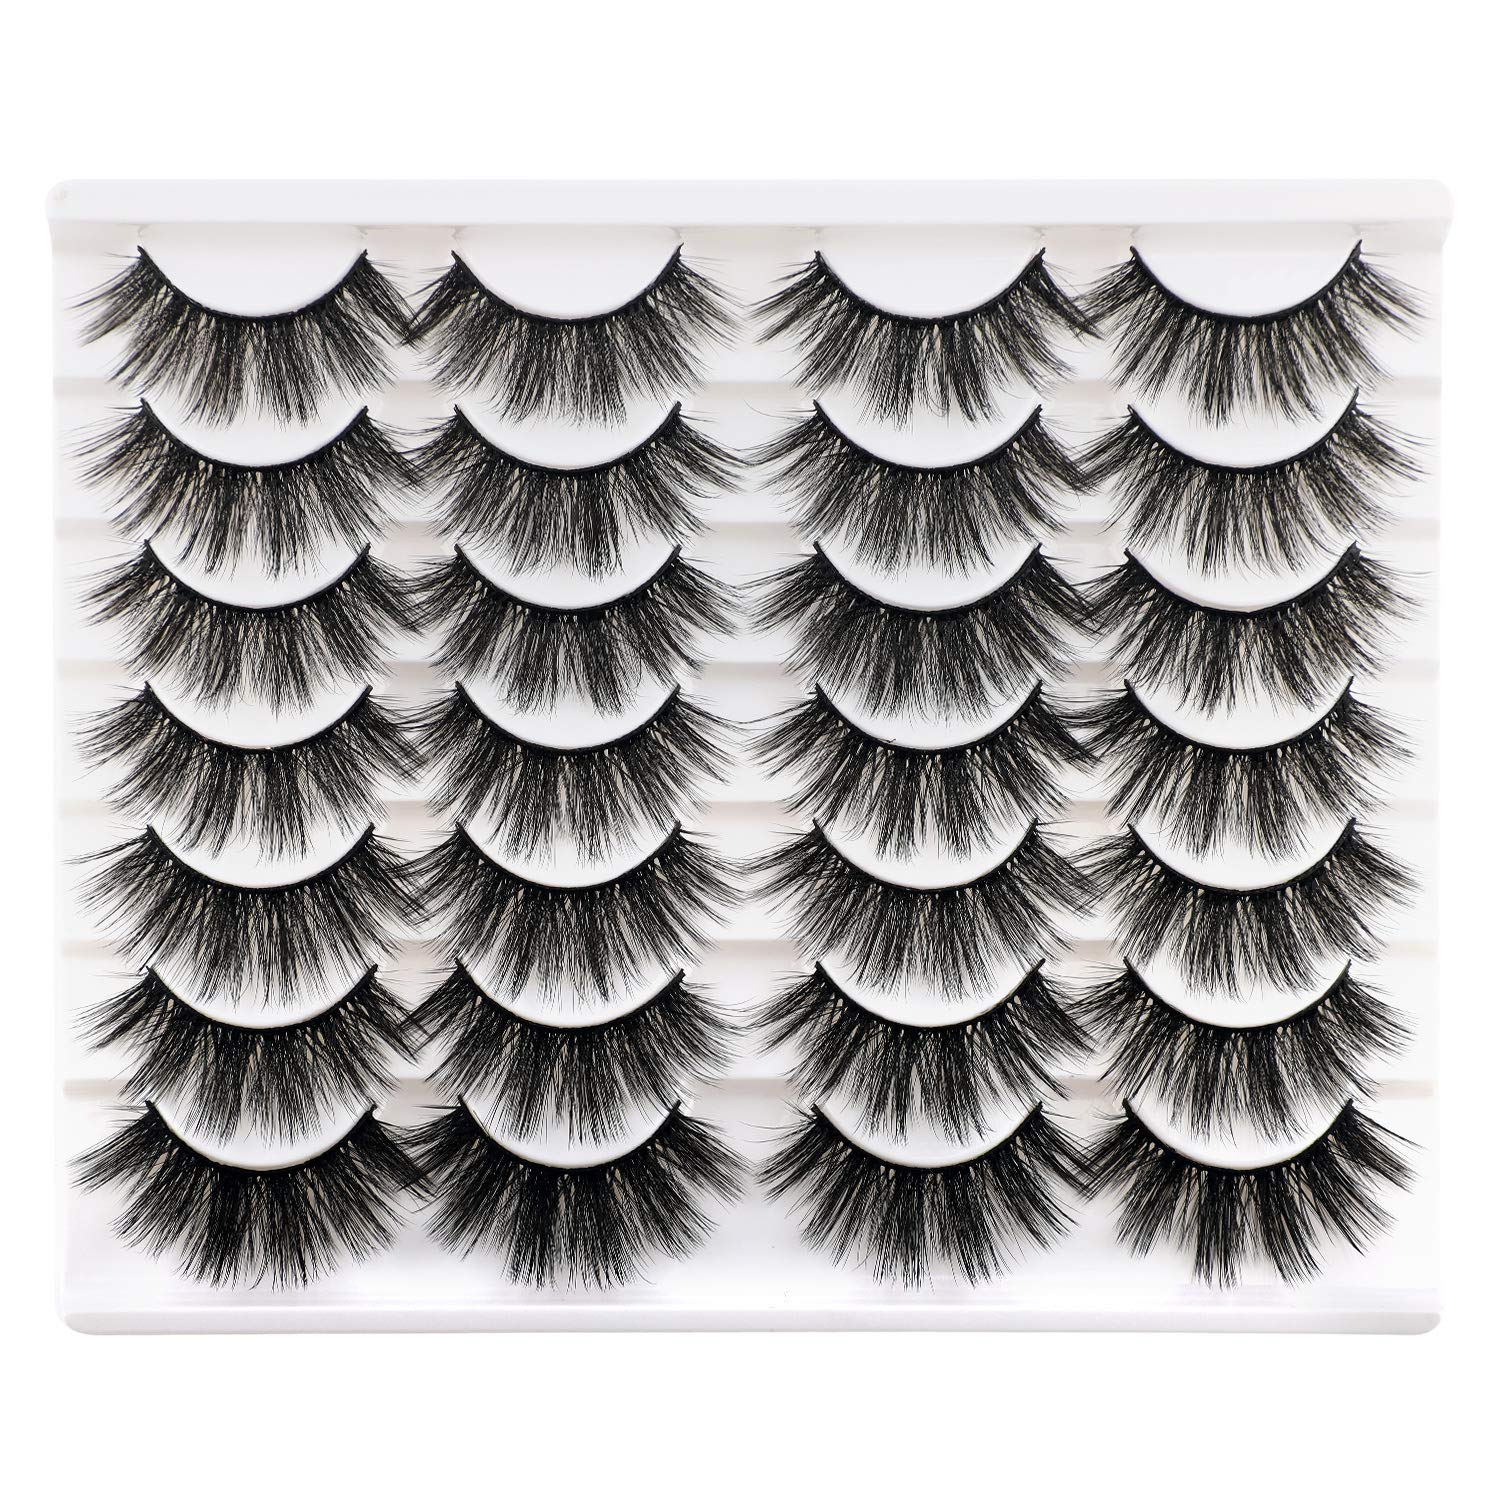 Newcally Lashes False Eyelashes specialty shop Dramatic P discount Mink Faux 20MM